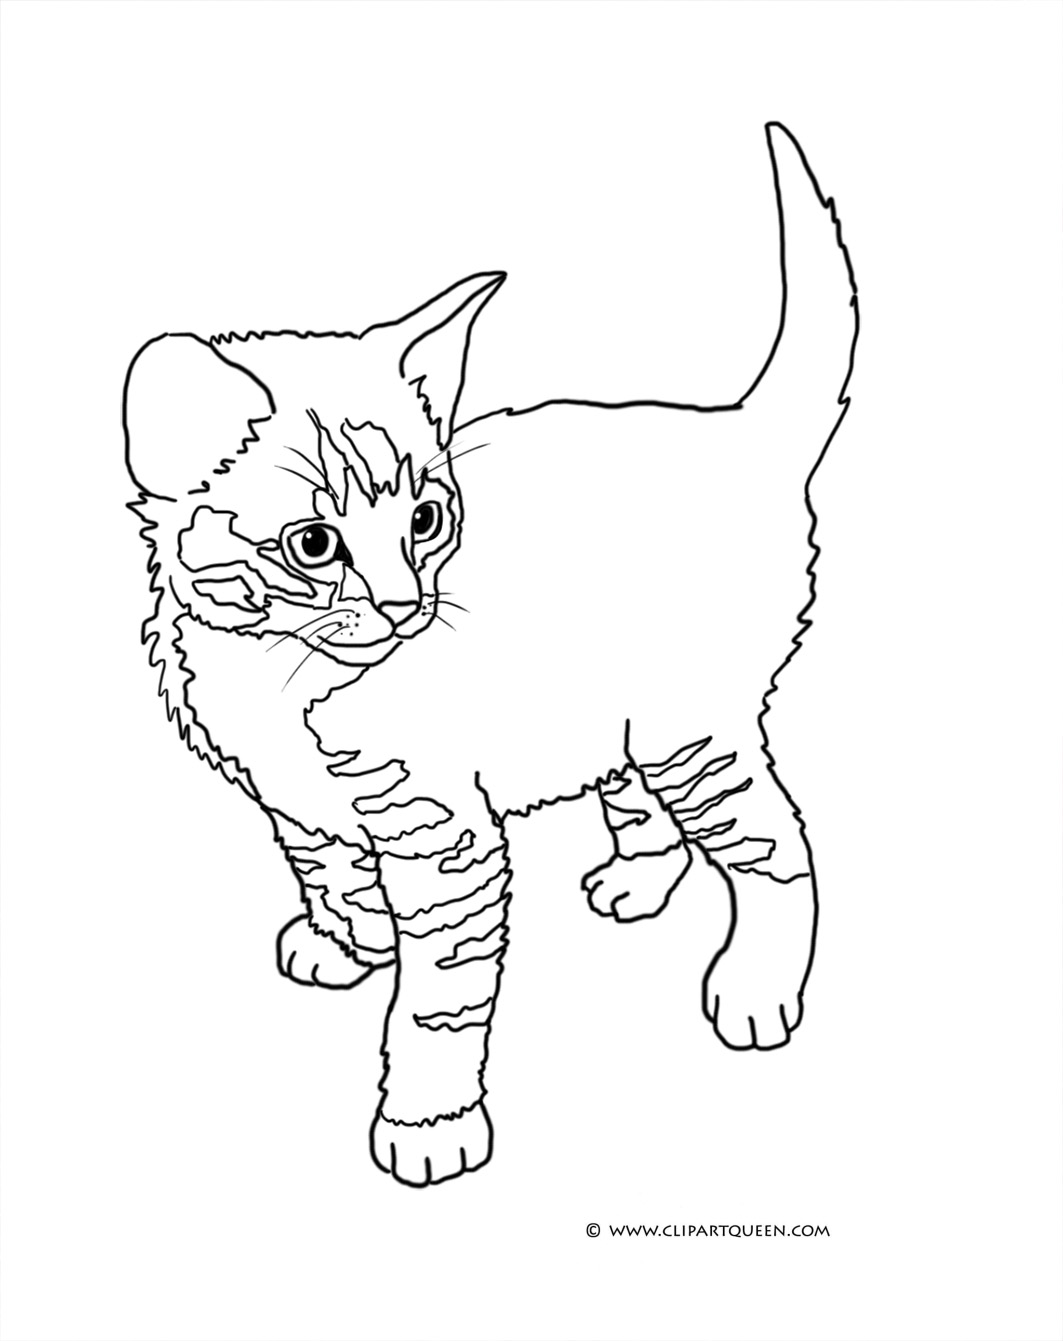 cat sketch easy